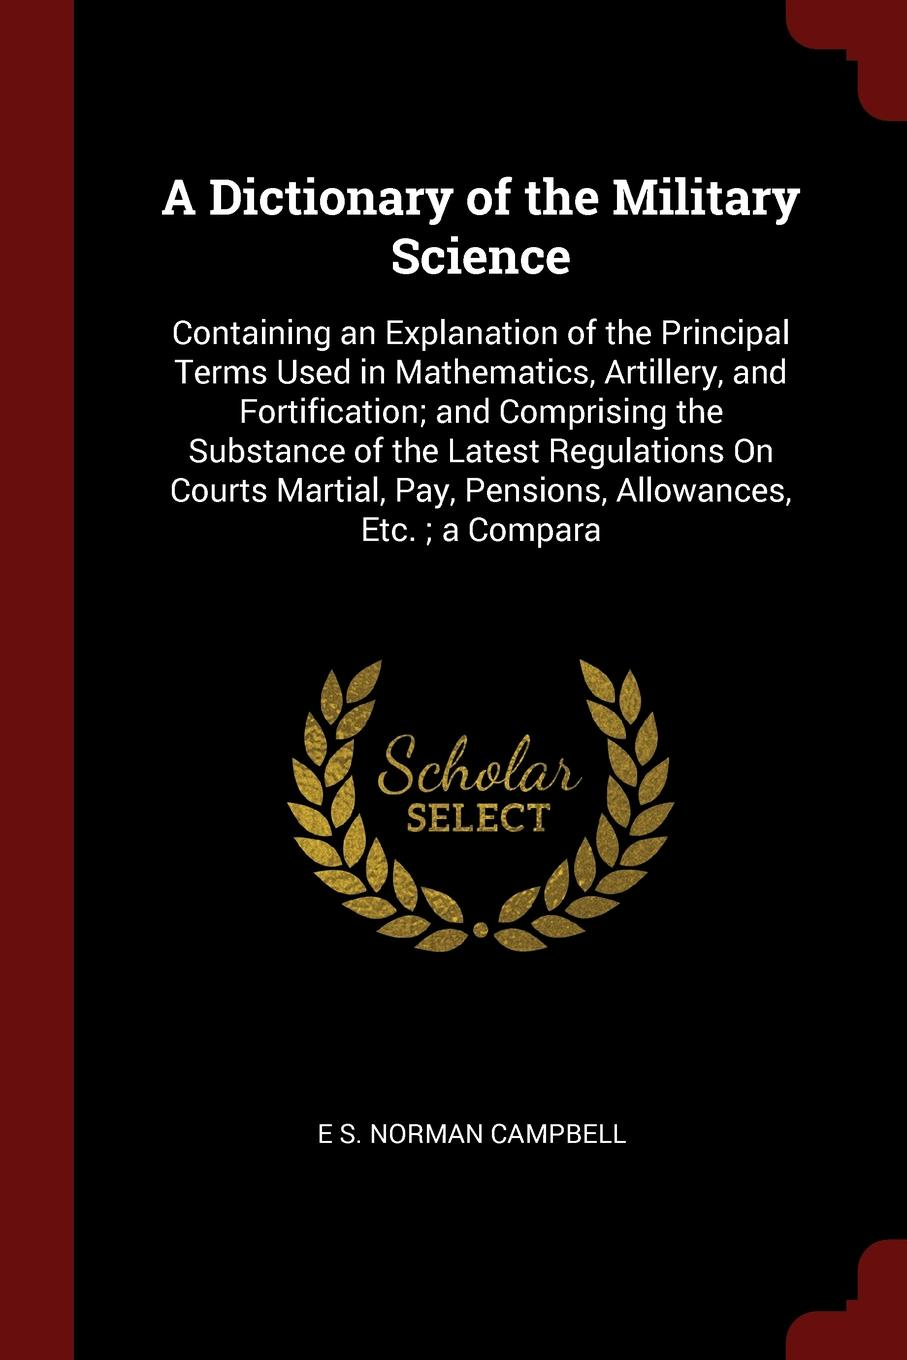 A Dictionary of the Military Science. Containing an Explanation of the Principal Terms Used in Mathematics, Artillery, and Fortification; and Comprising the Substance of the Latest Regulations On Courts Martial, Pay, Pensions, Allowances, Etc. ; a...